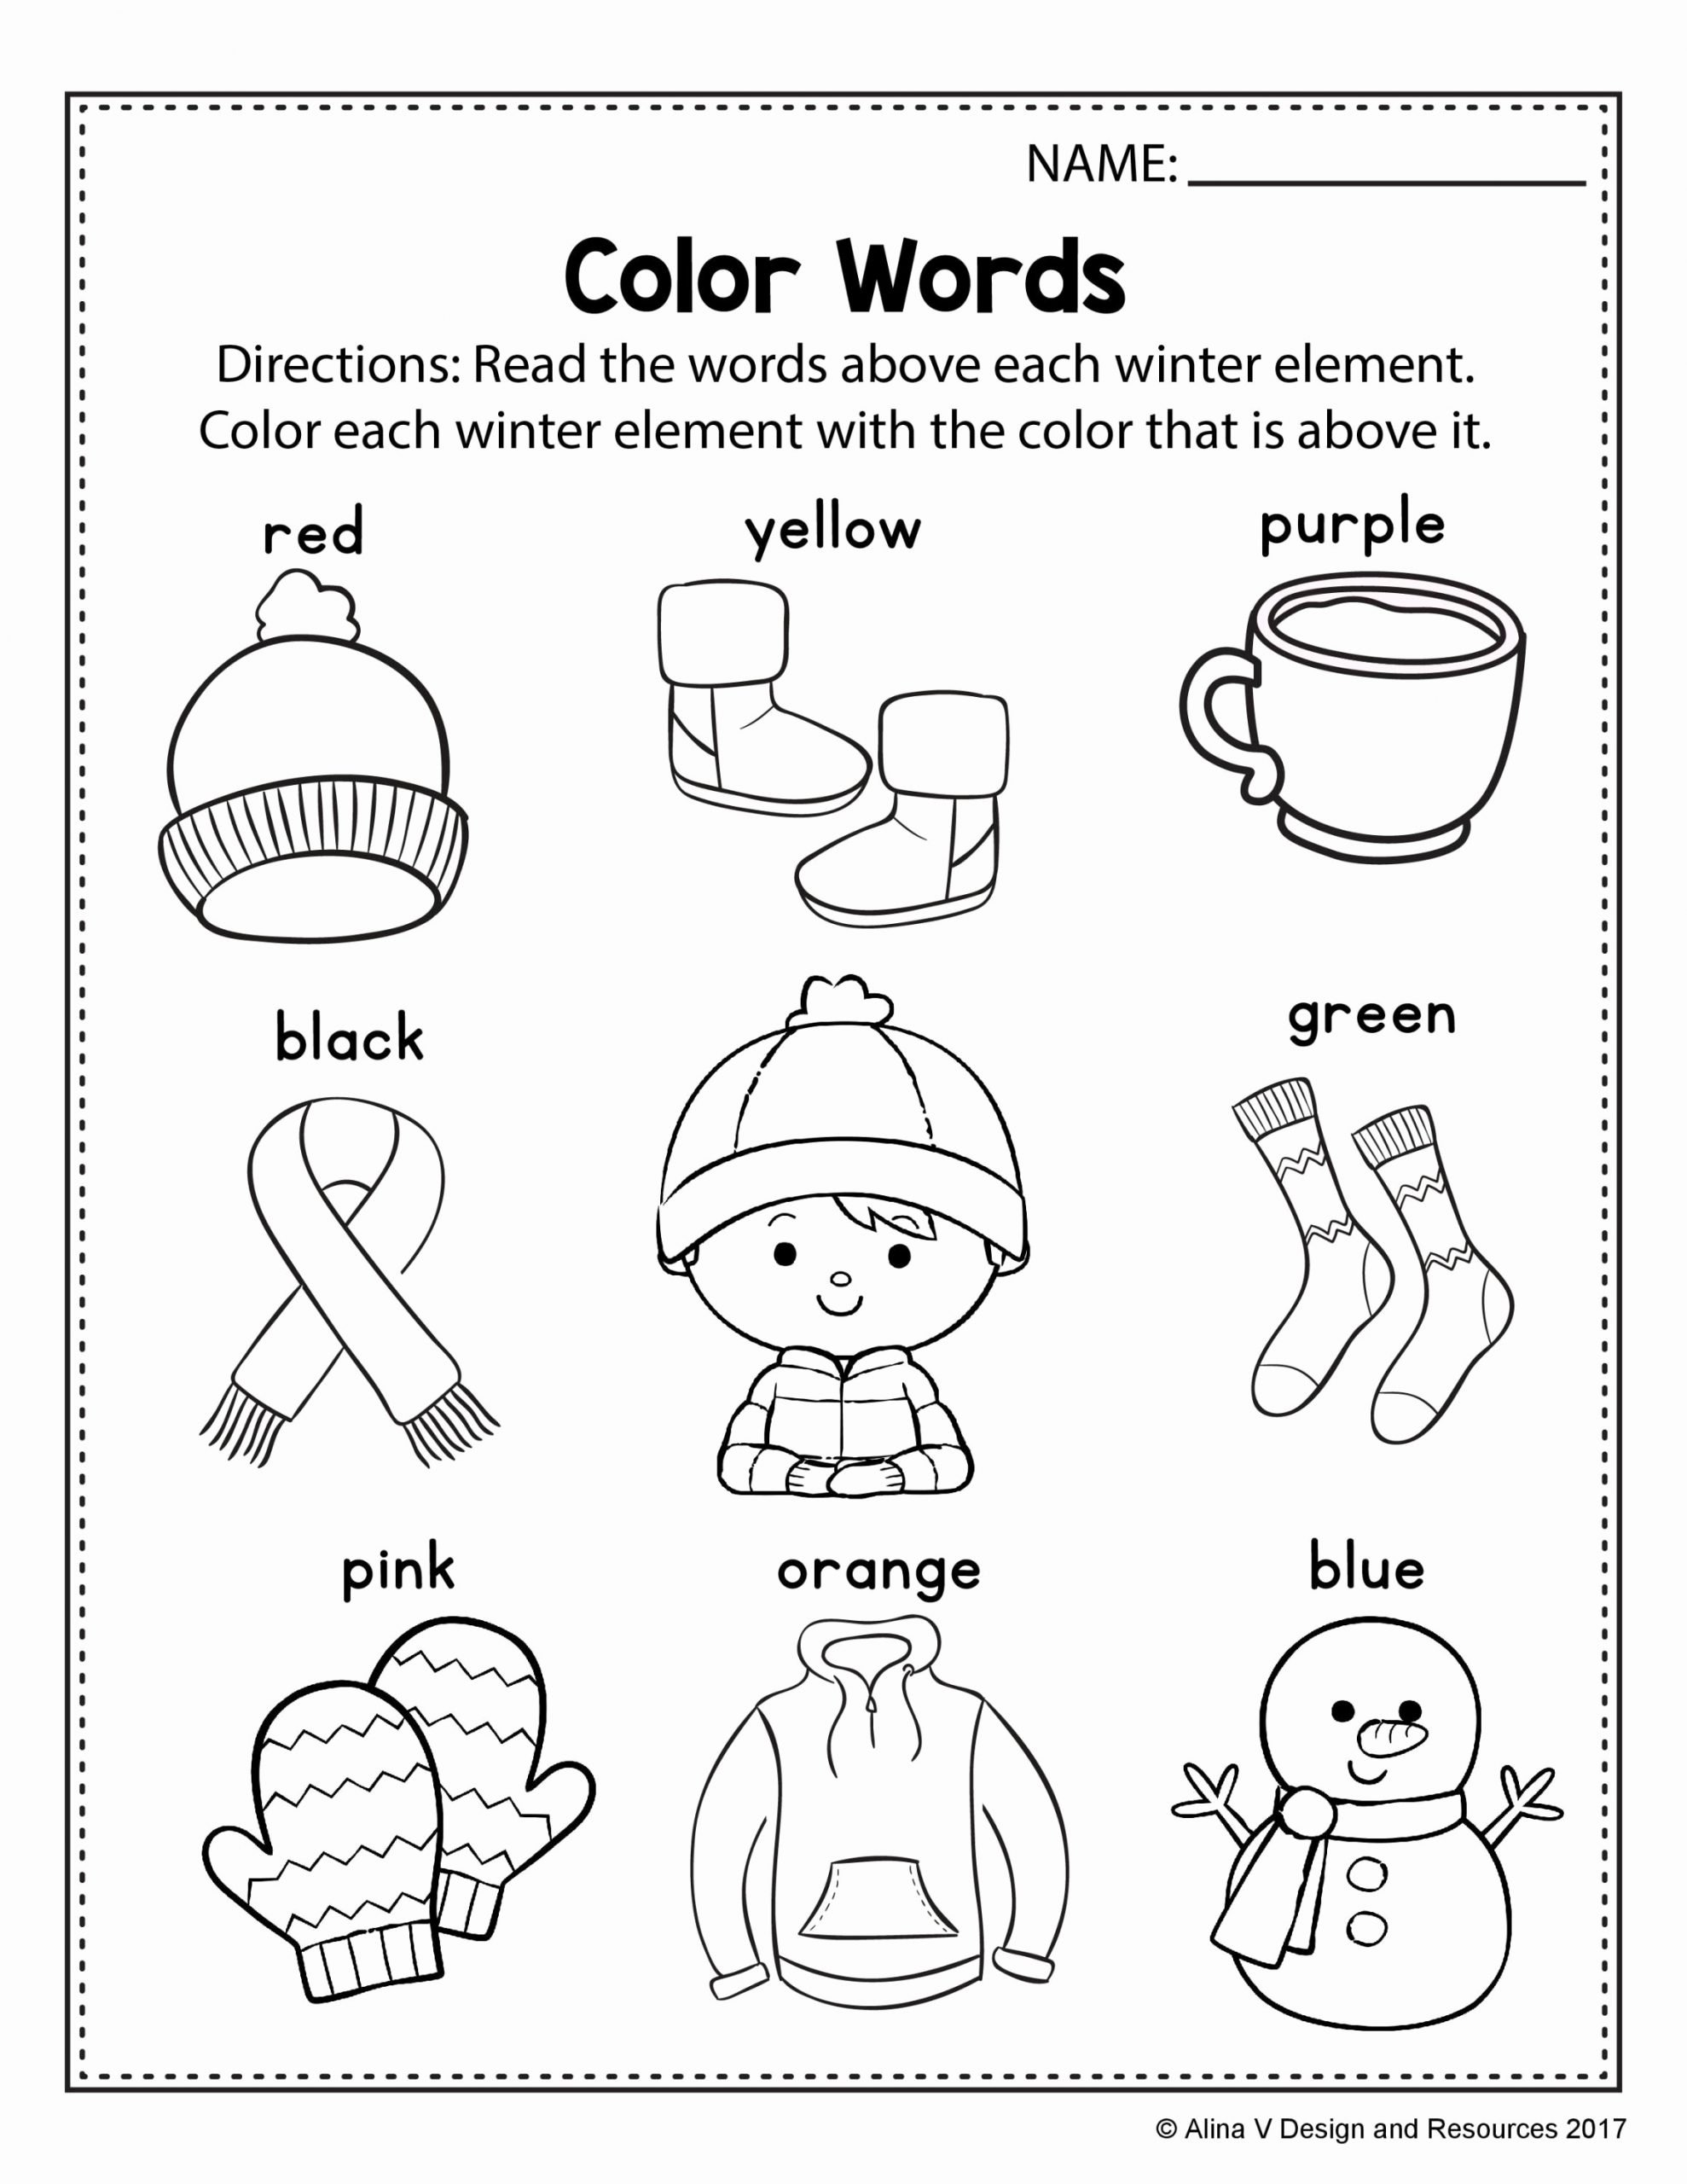 Winter Activity Worksheets for Preschoolers Free Alinavdesign